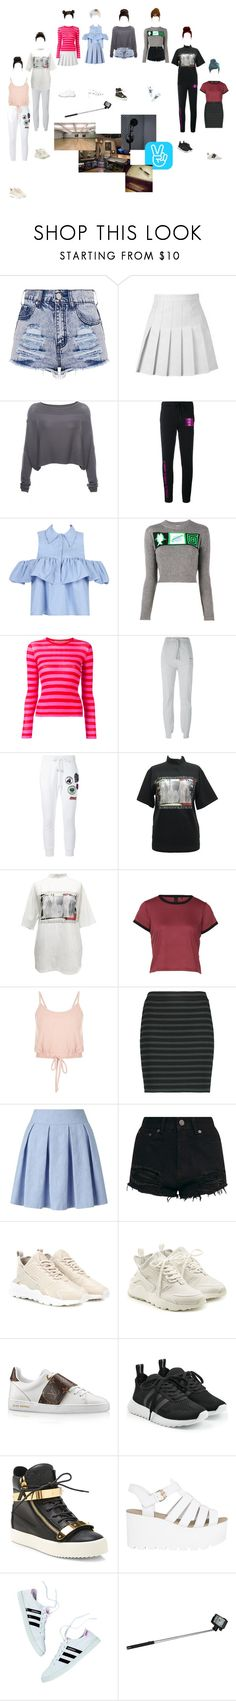 """V live"" by yaseumin ❤ liked on Polyvore featuring Sarah Pacini, Brashy, WithChic, Miu Miu, Ermanno Scervino, Vetements, Dsquared2, M.Y.O.B., T By Alexander Wang and Miss Selfridge"